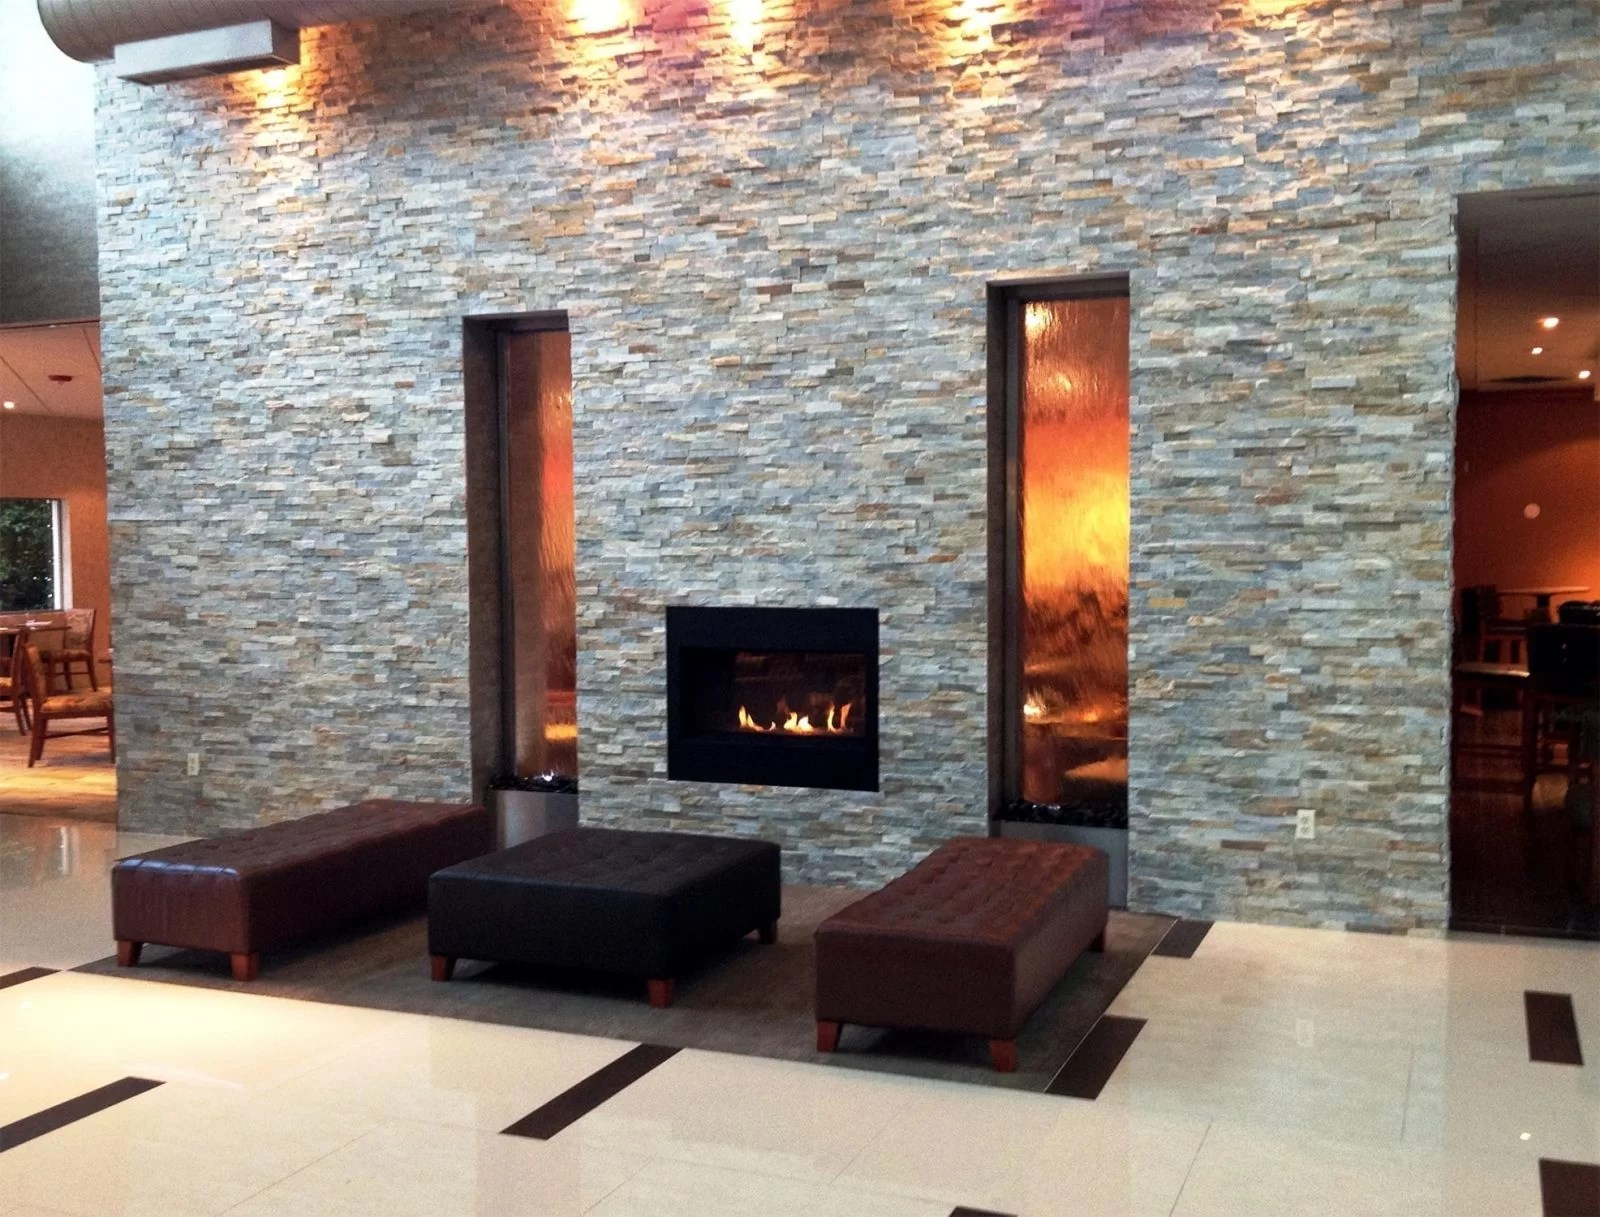 Water Walls Holiday Inn Plainview NJ glass water wall with stainless frame